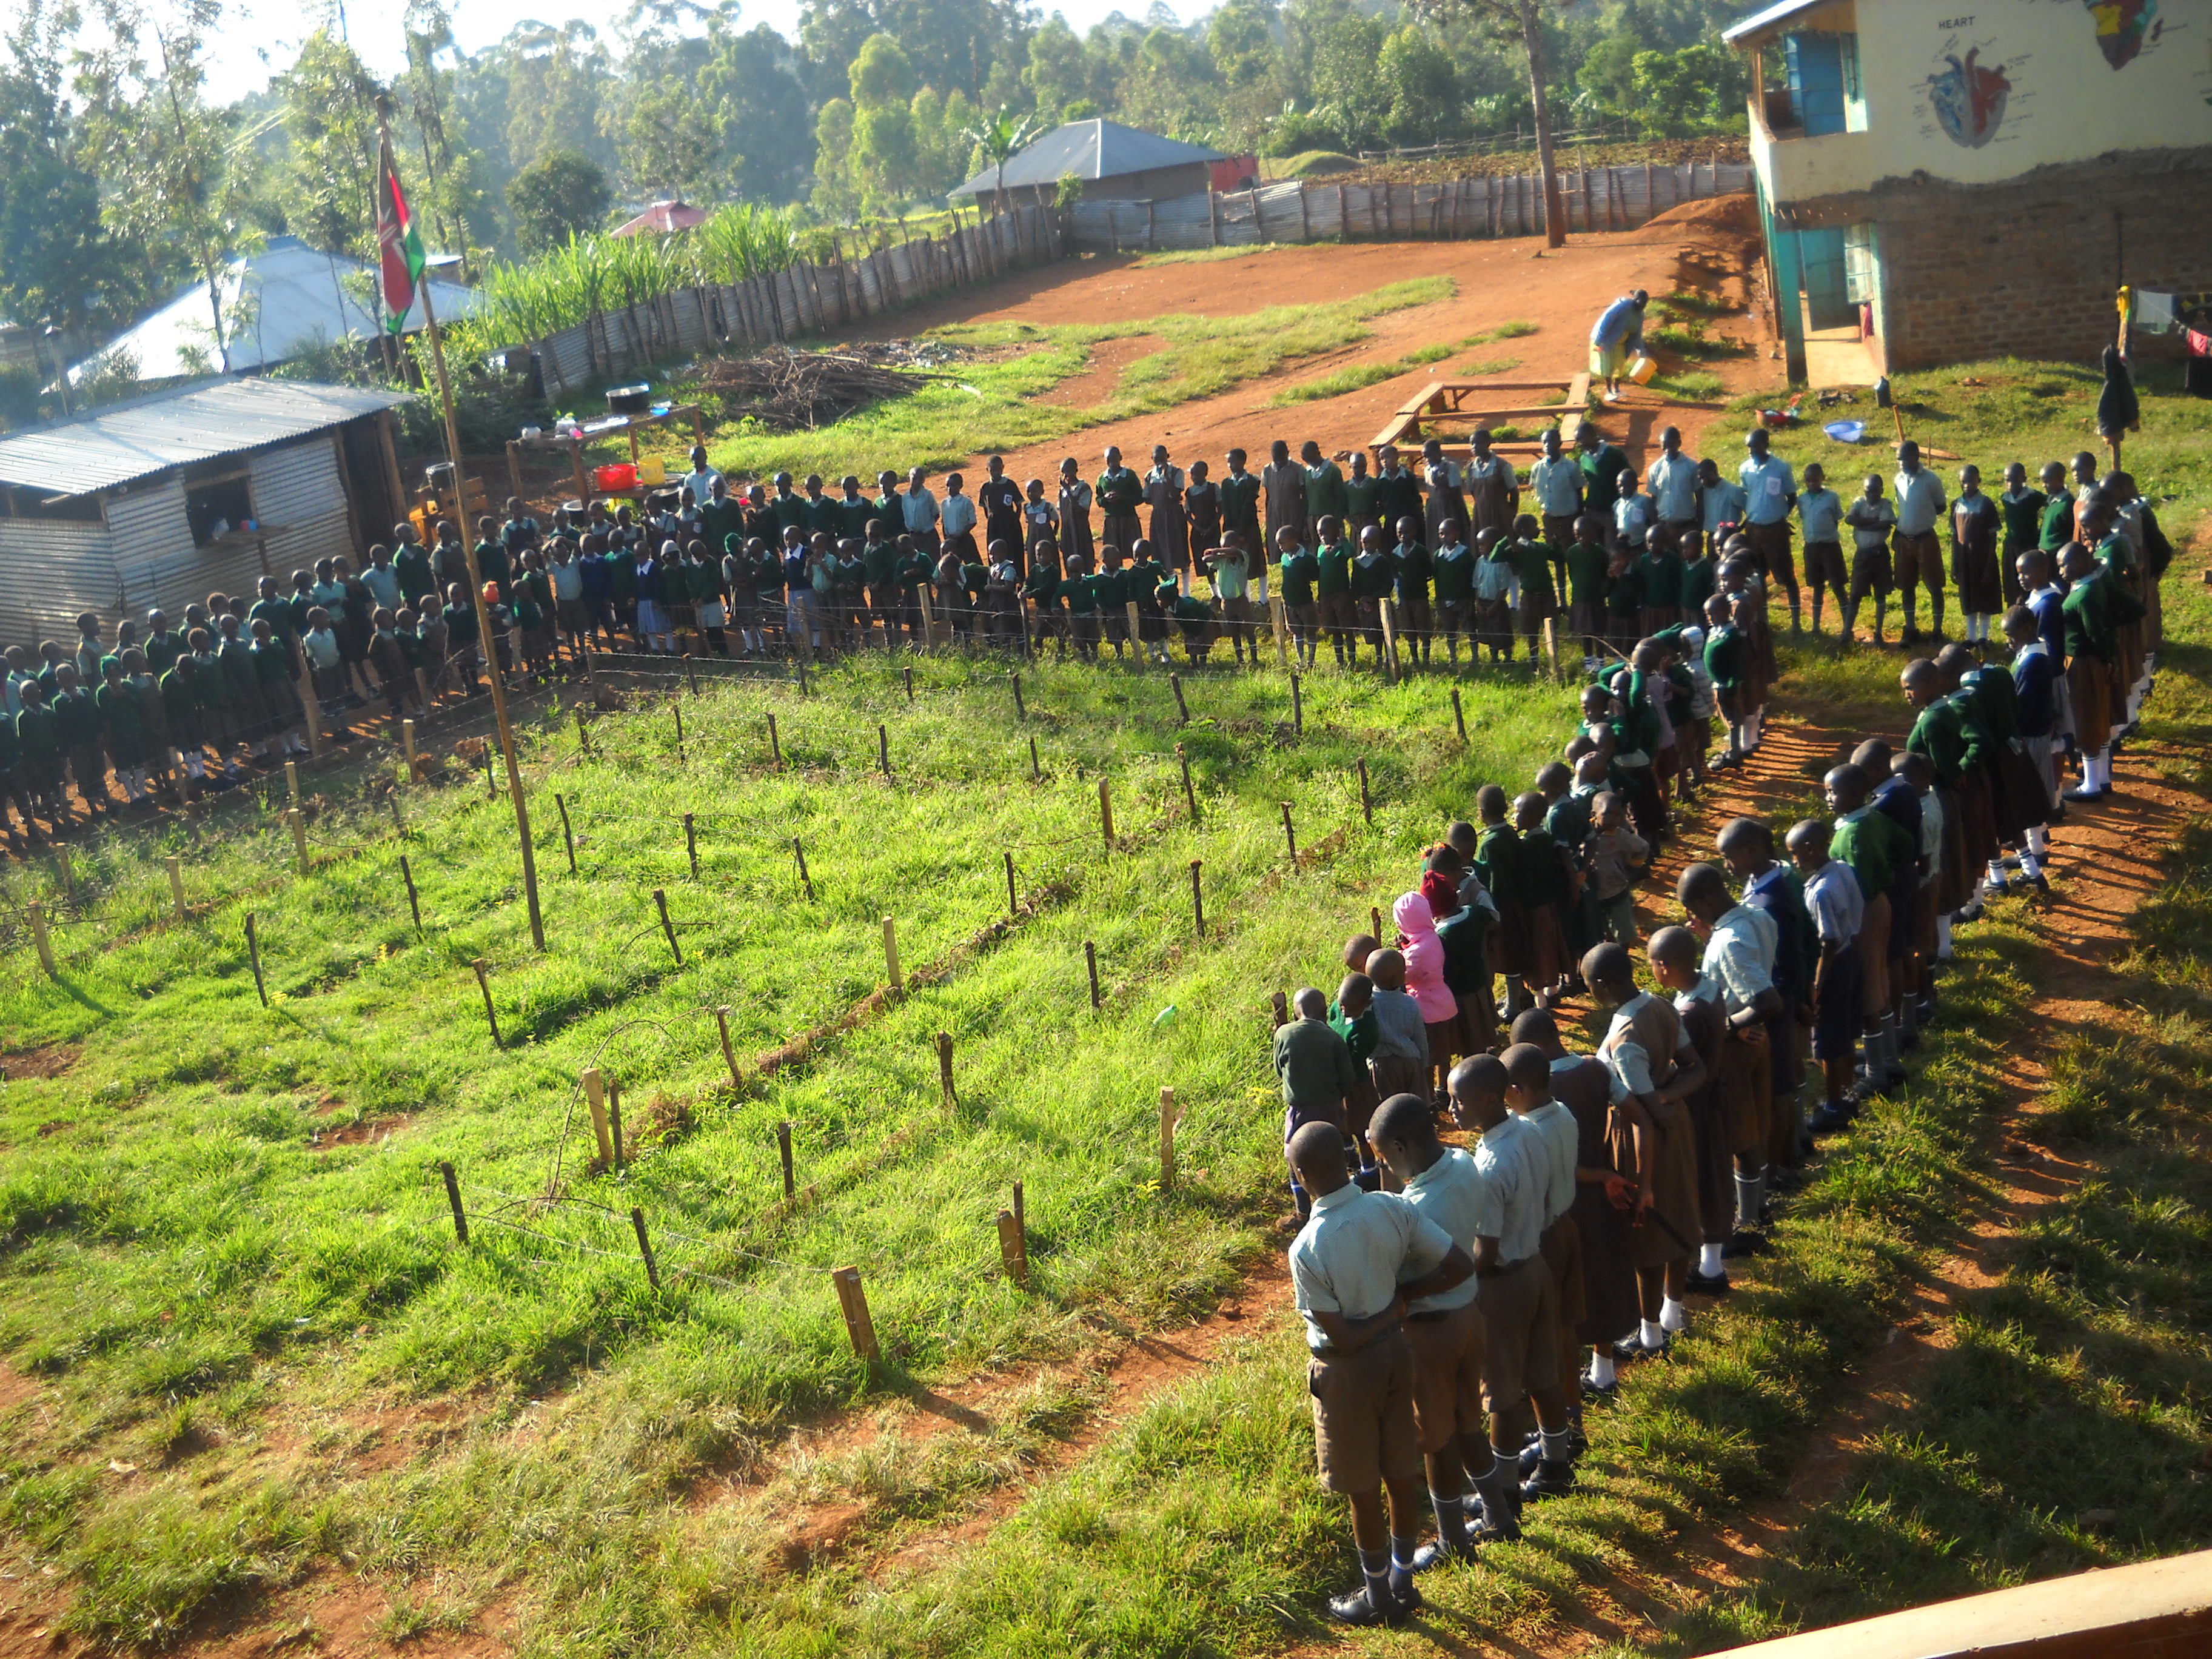 Buy adjoining land and expand the school to meet the Kenyan Ministry of Education requirements for a primary school.